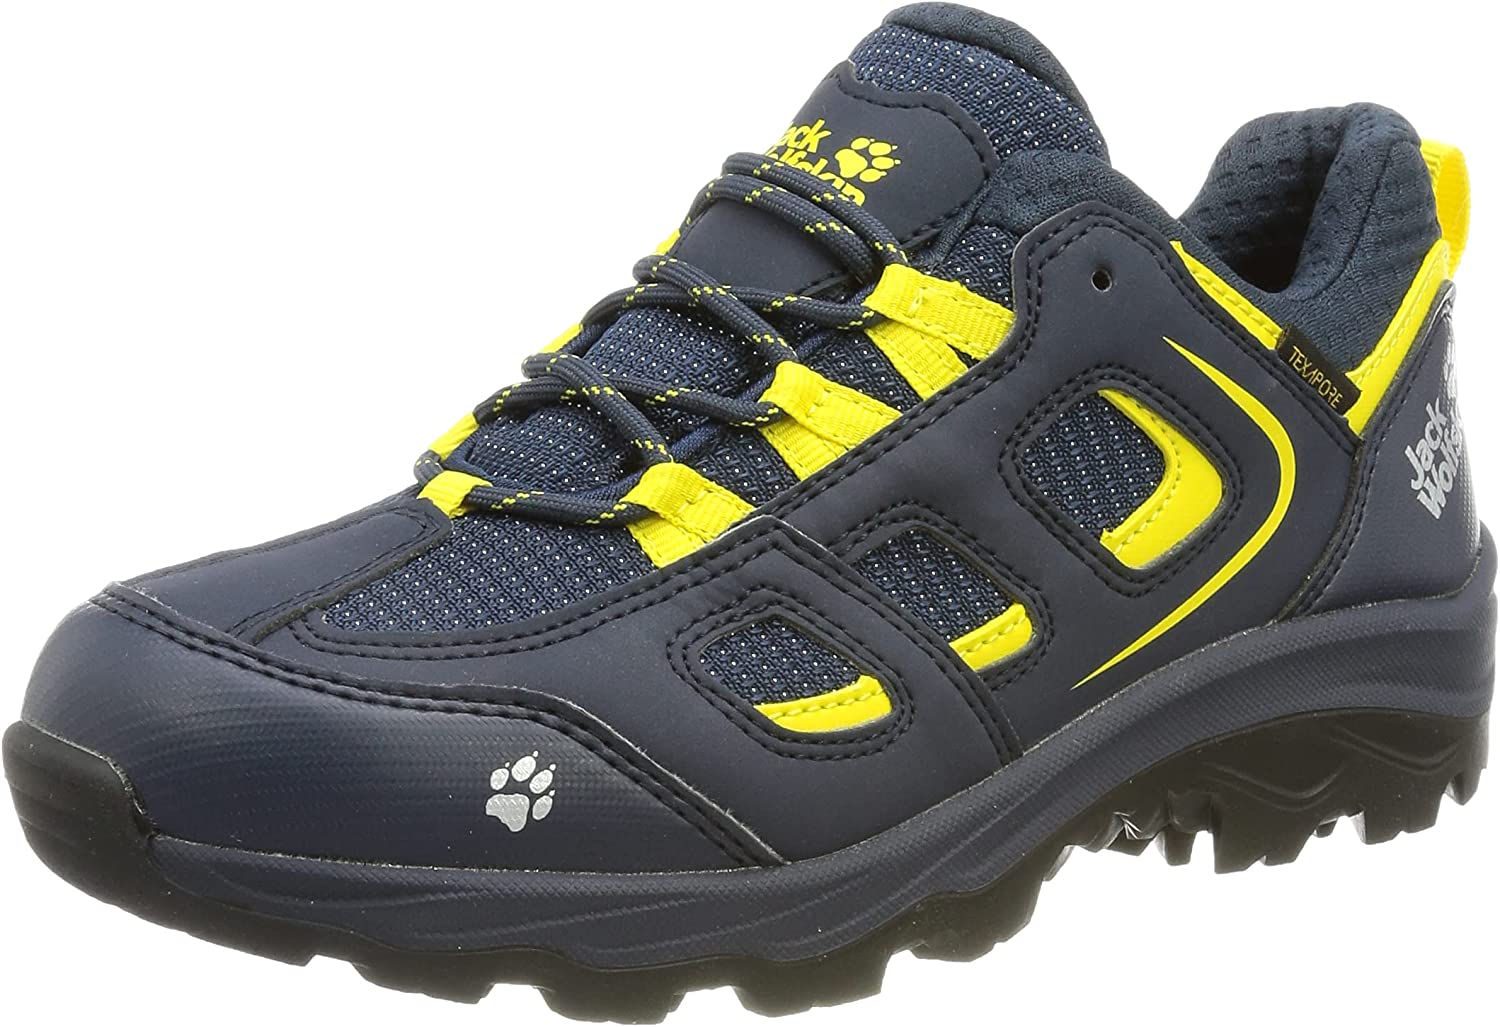 Jack Wolfskin Boy's High Rise Max 74% 2021new shipping free shipping OFF Hiking Walking Boots Shoes